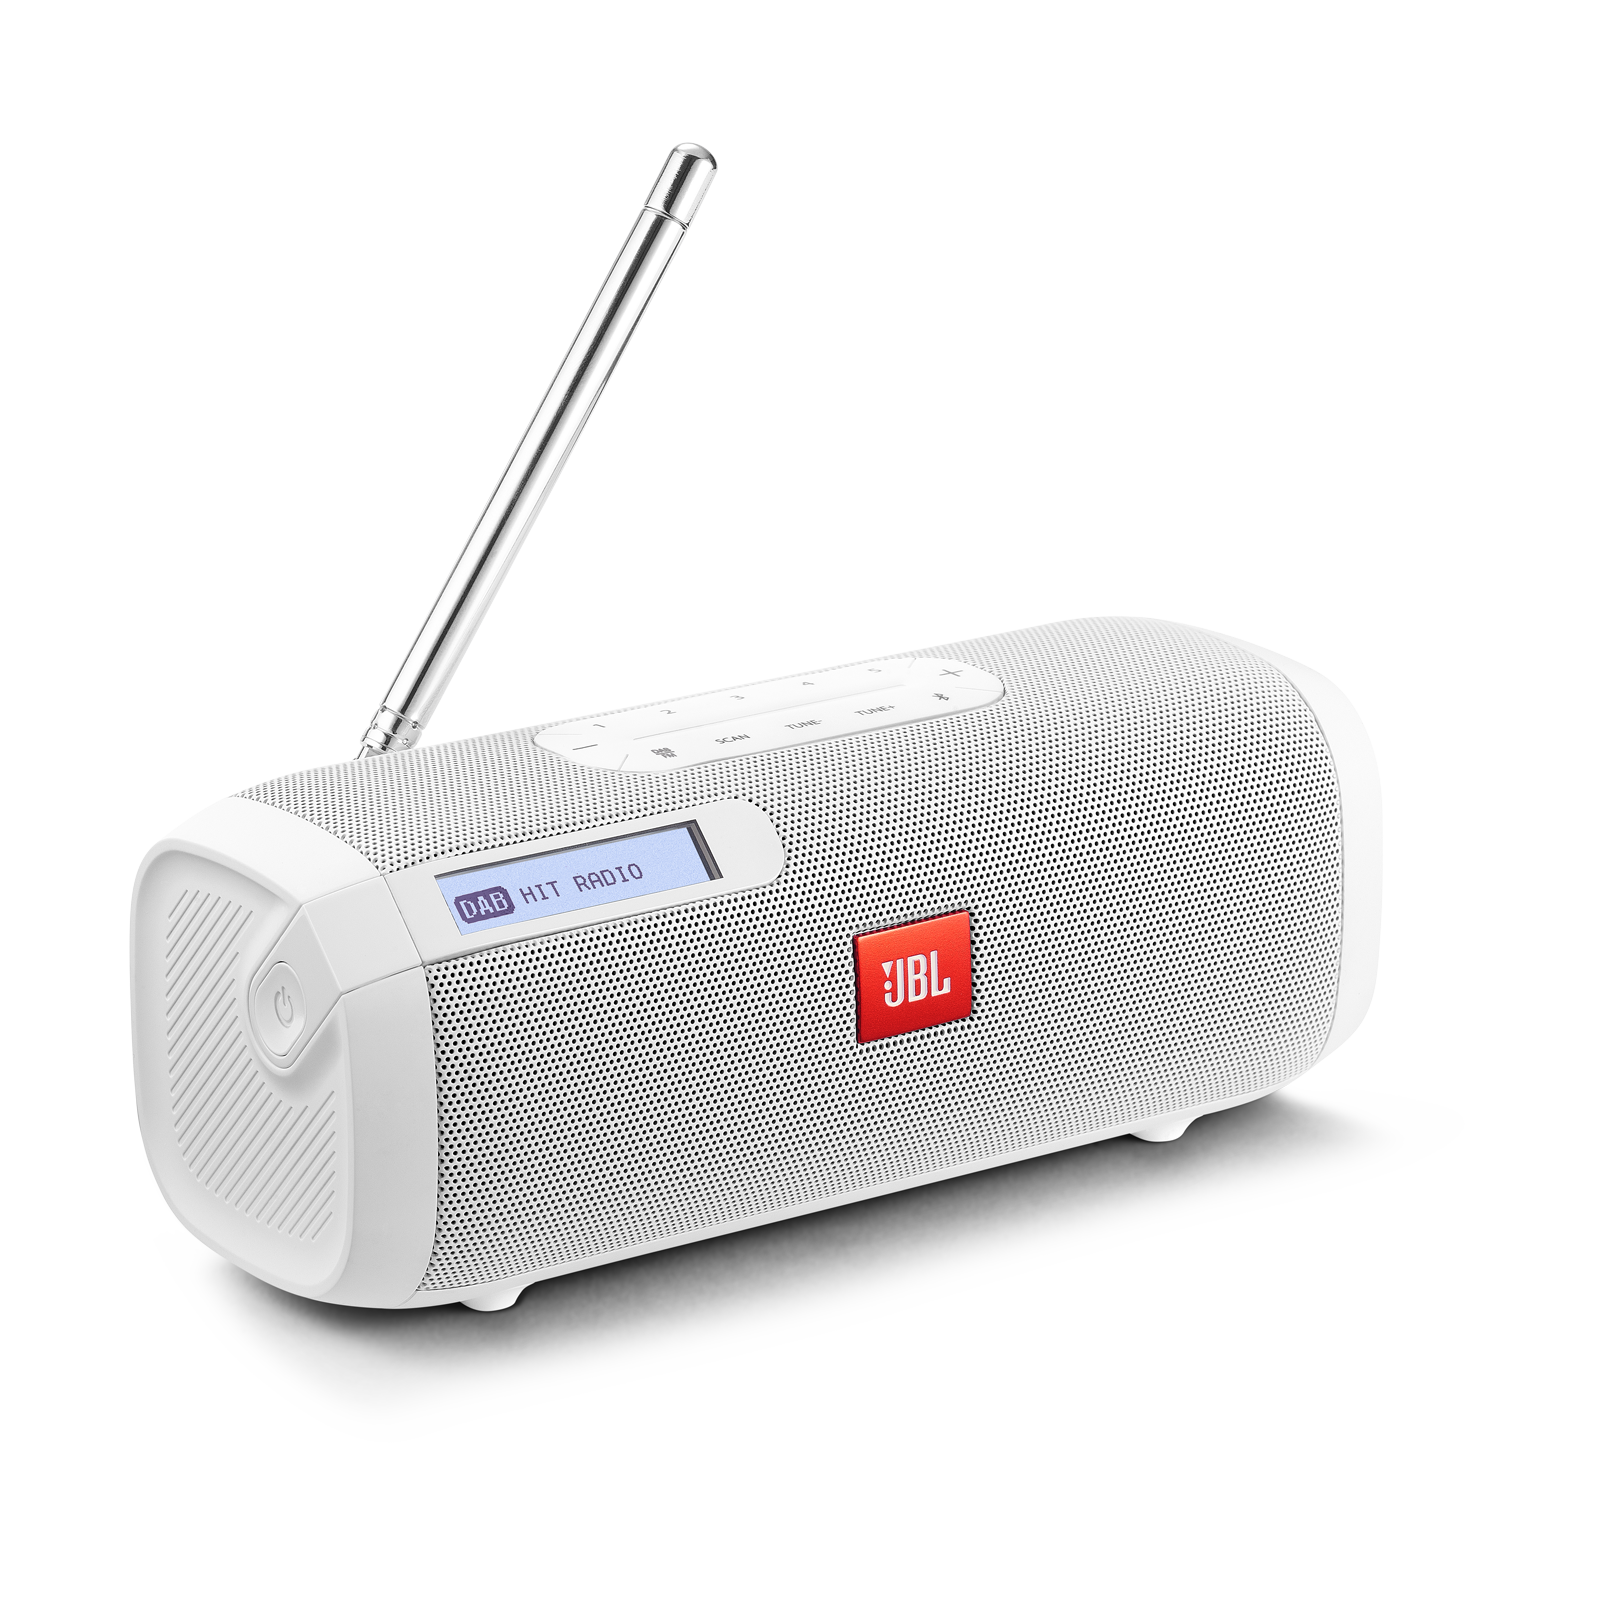 JBL Tuner - White - Portable Bluetooth Speaker with DAB/FM radio - Hero